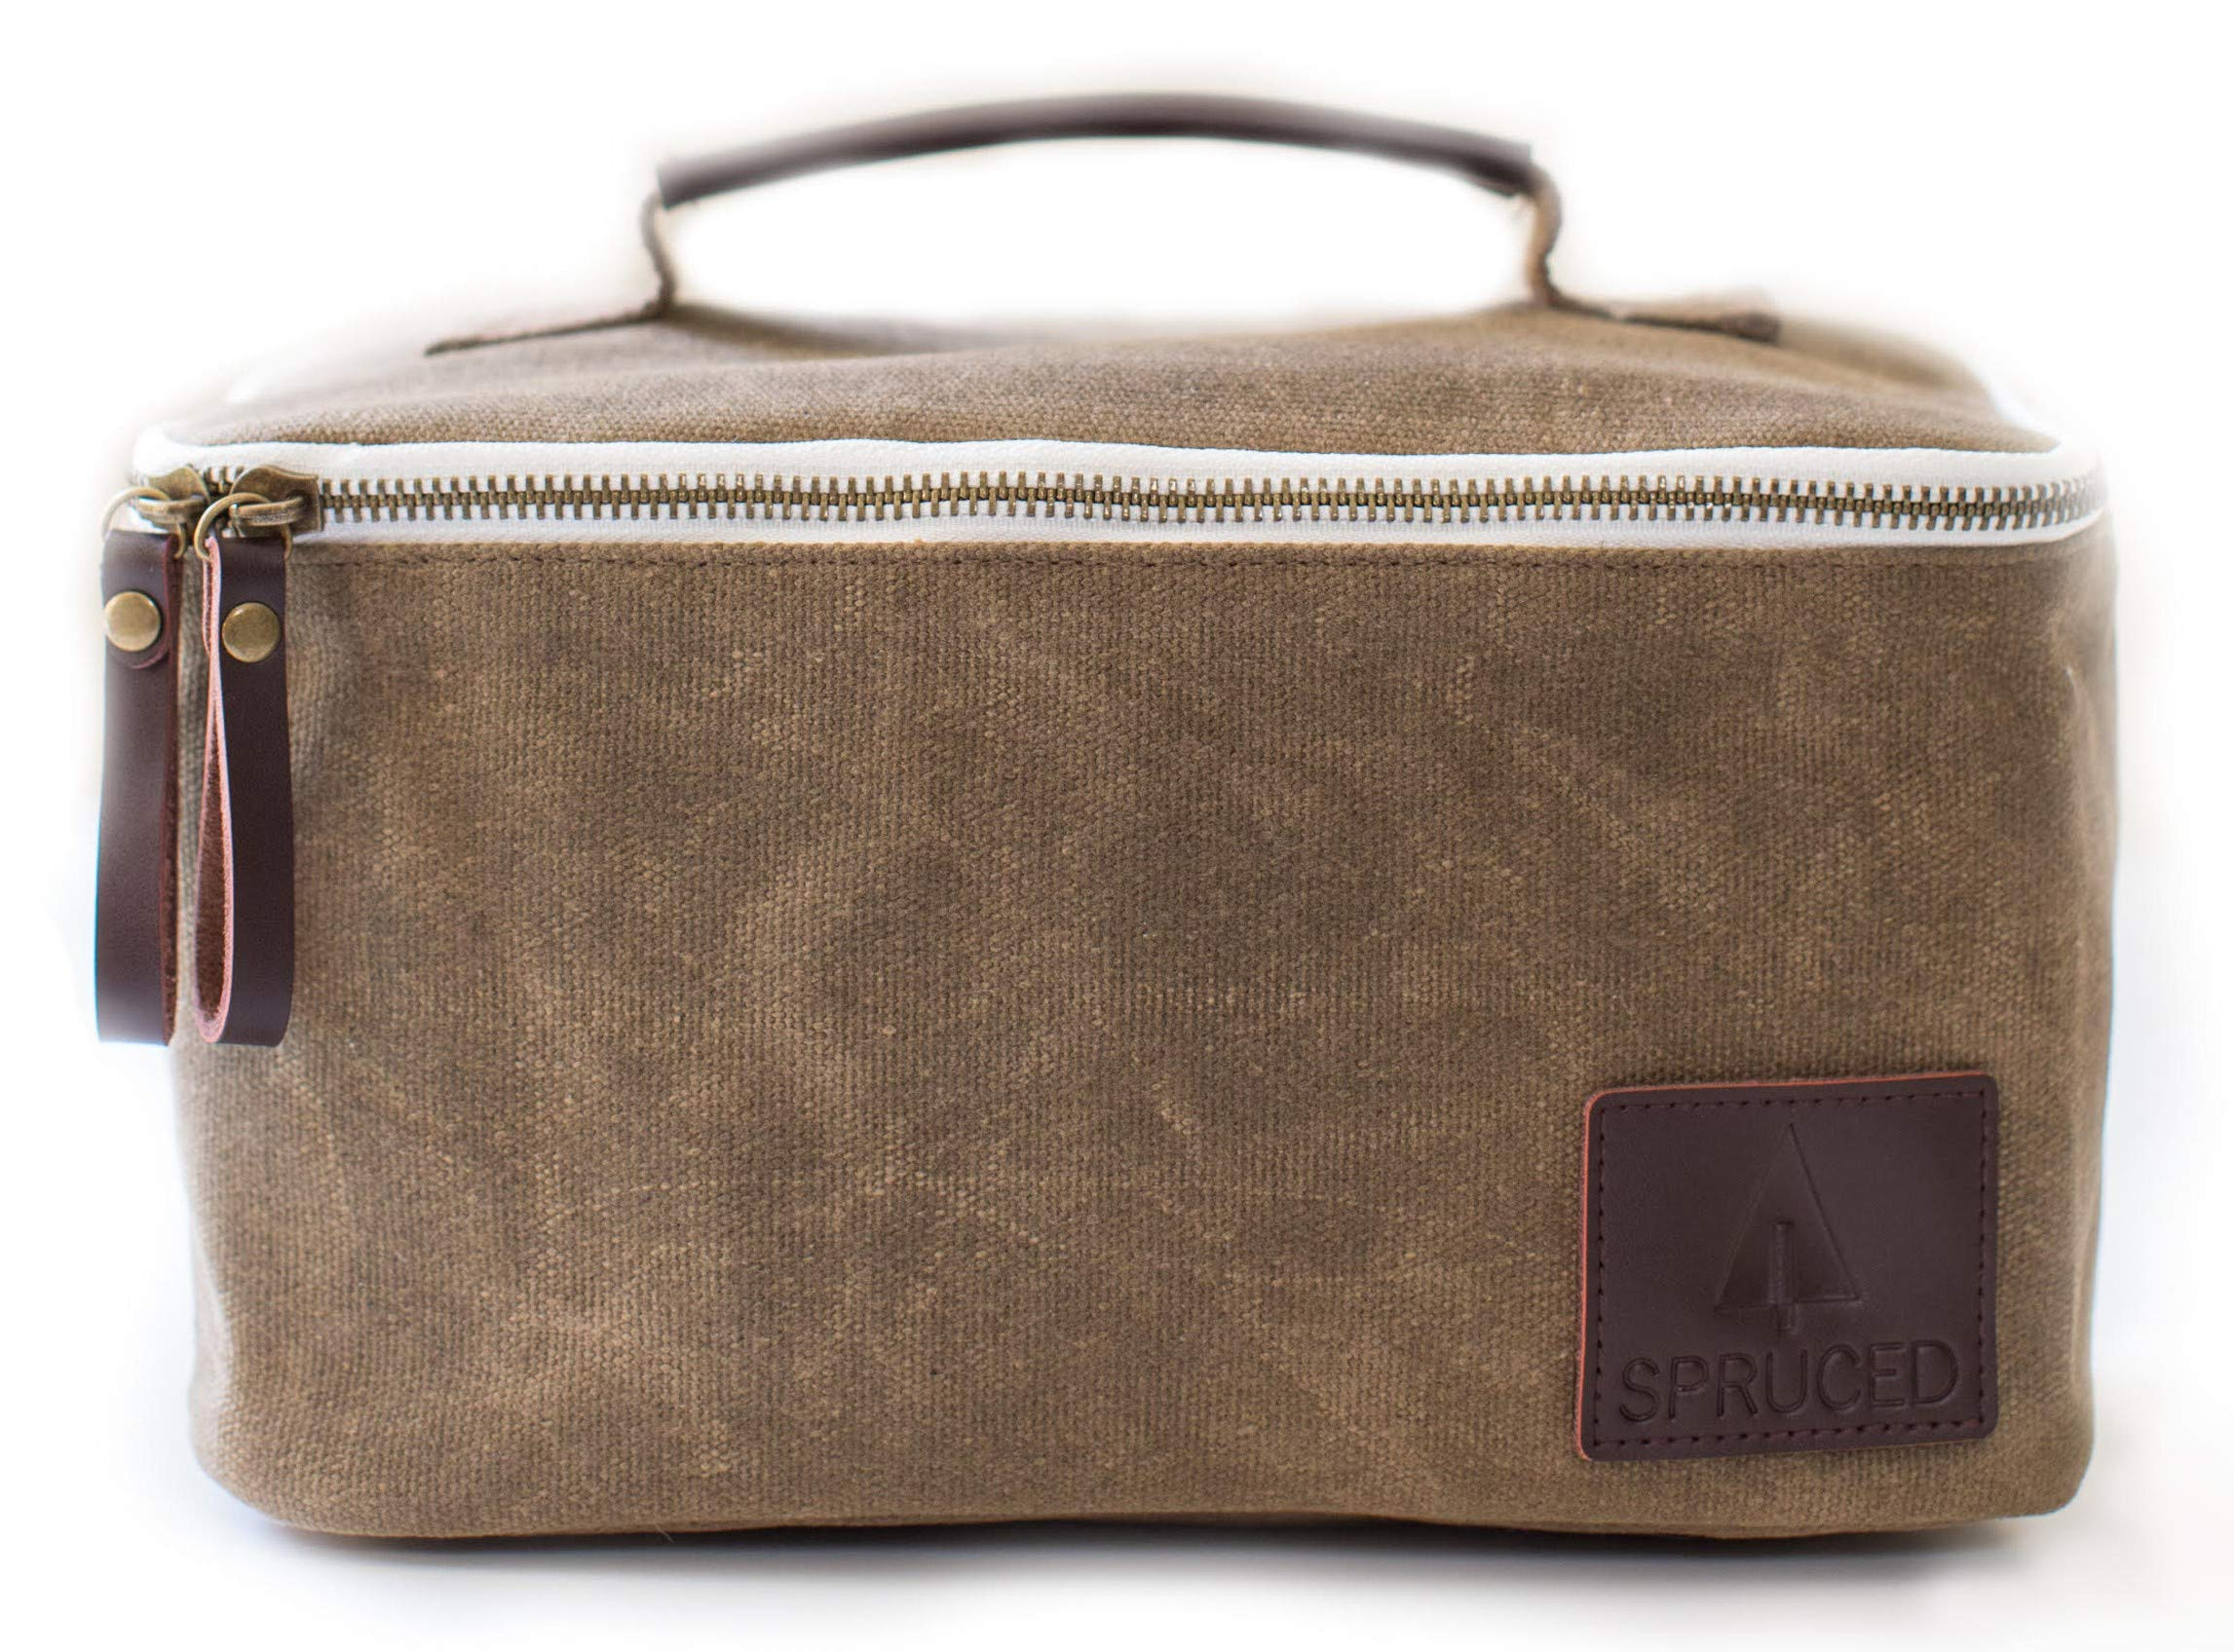 Lunch Box for Adults, Men, Women, Kids | Insulated Cooler Bag | Waxed Canvas and Genuine Leather | Reusable, Eco Friendly | Stylish, Classic Look (Alpine Green)